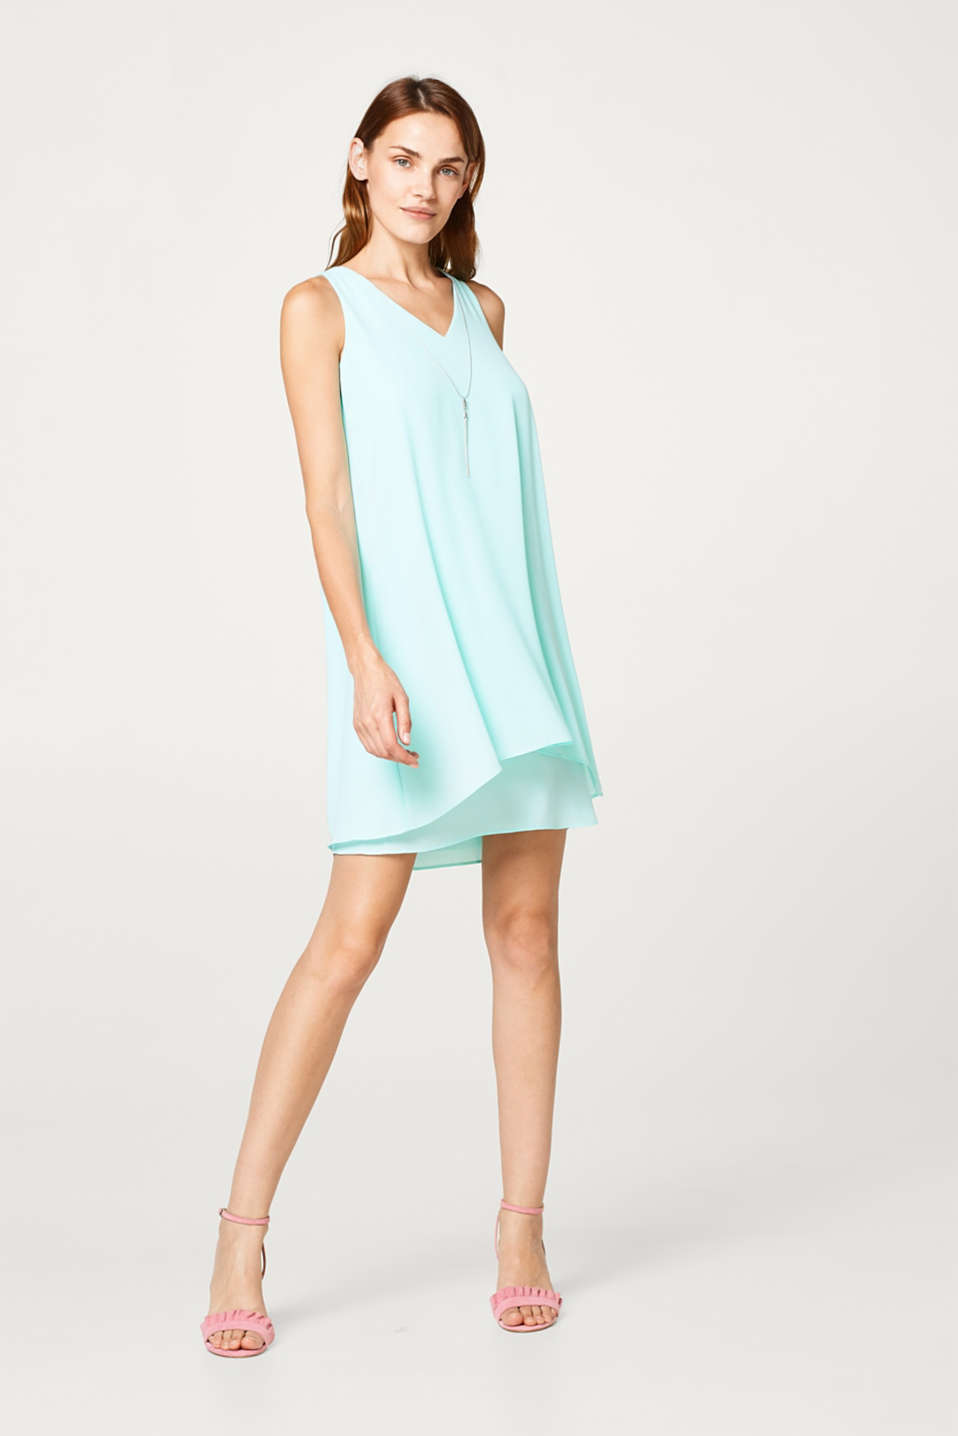 Esprit - Layered-look chiffon dress with a detachable chain